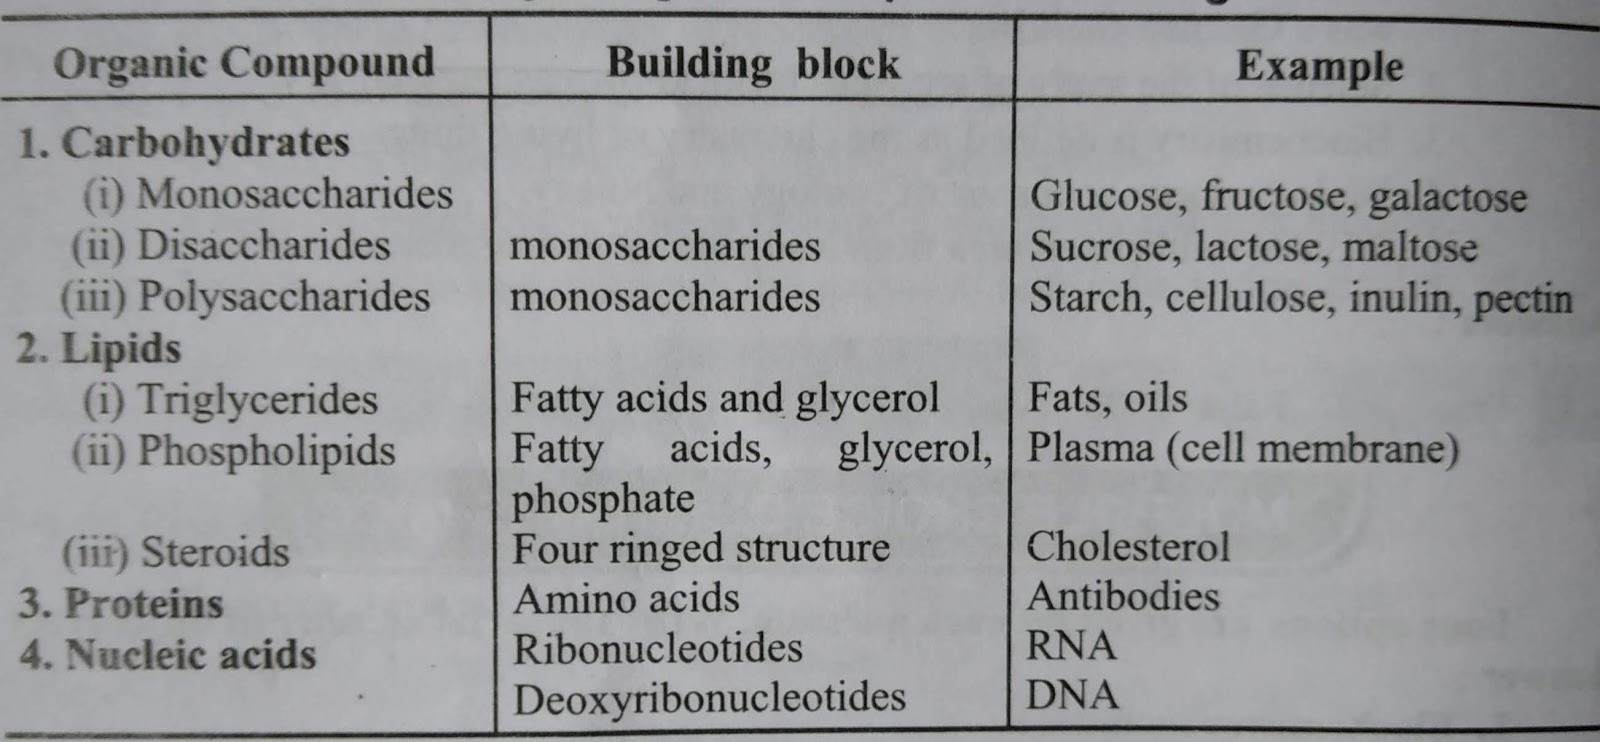 Organic compounds of living bodies